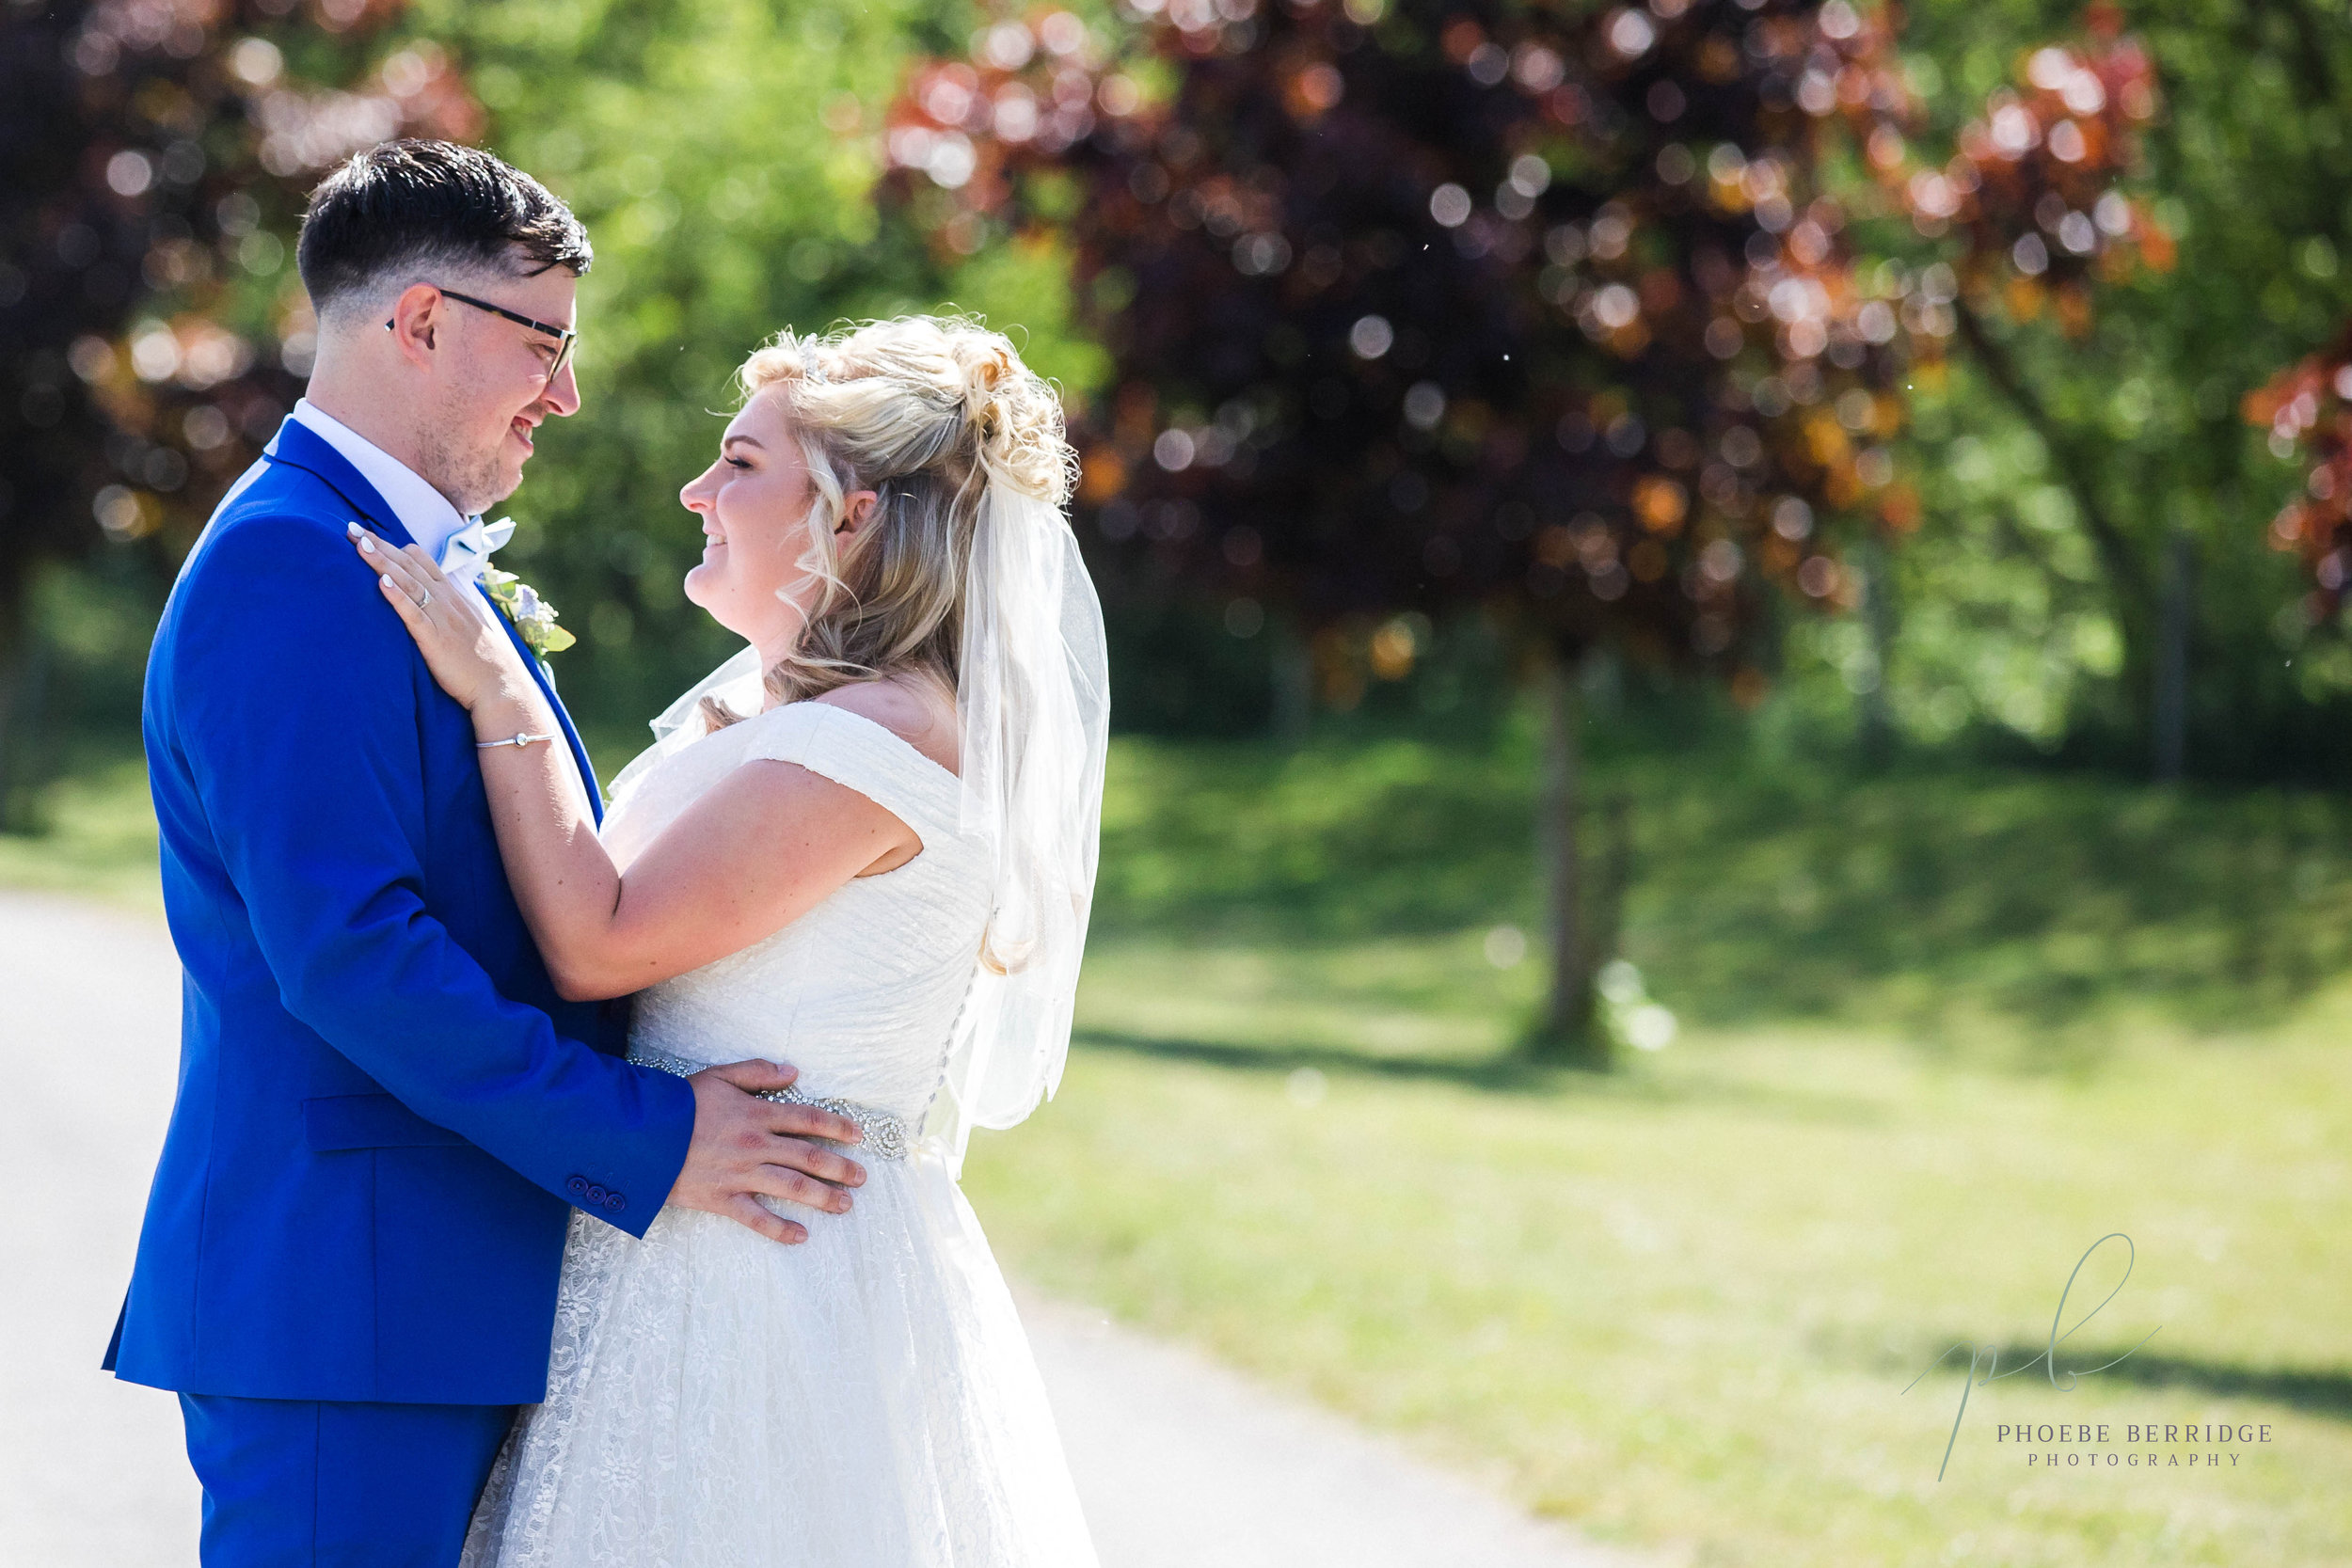 mrandmrsturner-wedding25-5-19-5356.jpg